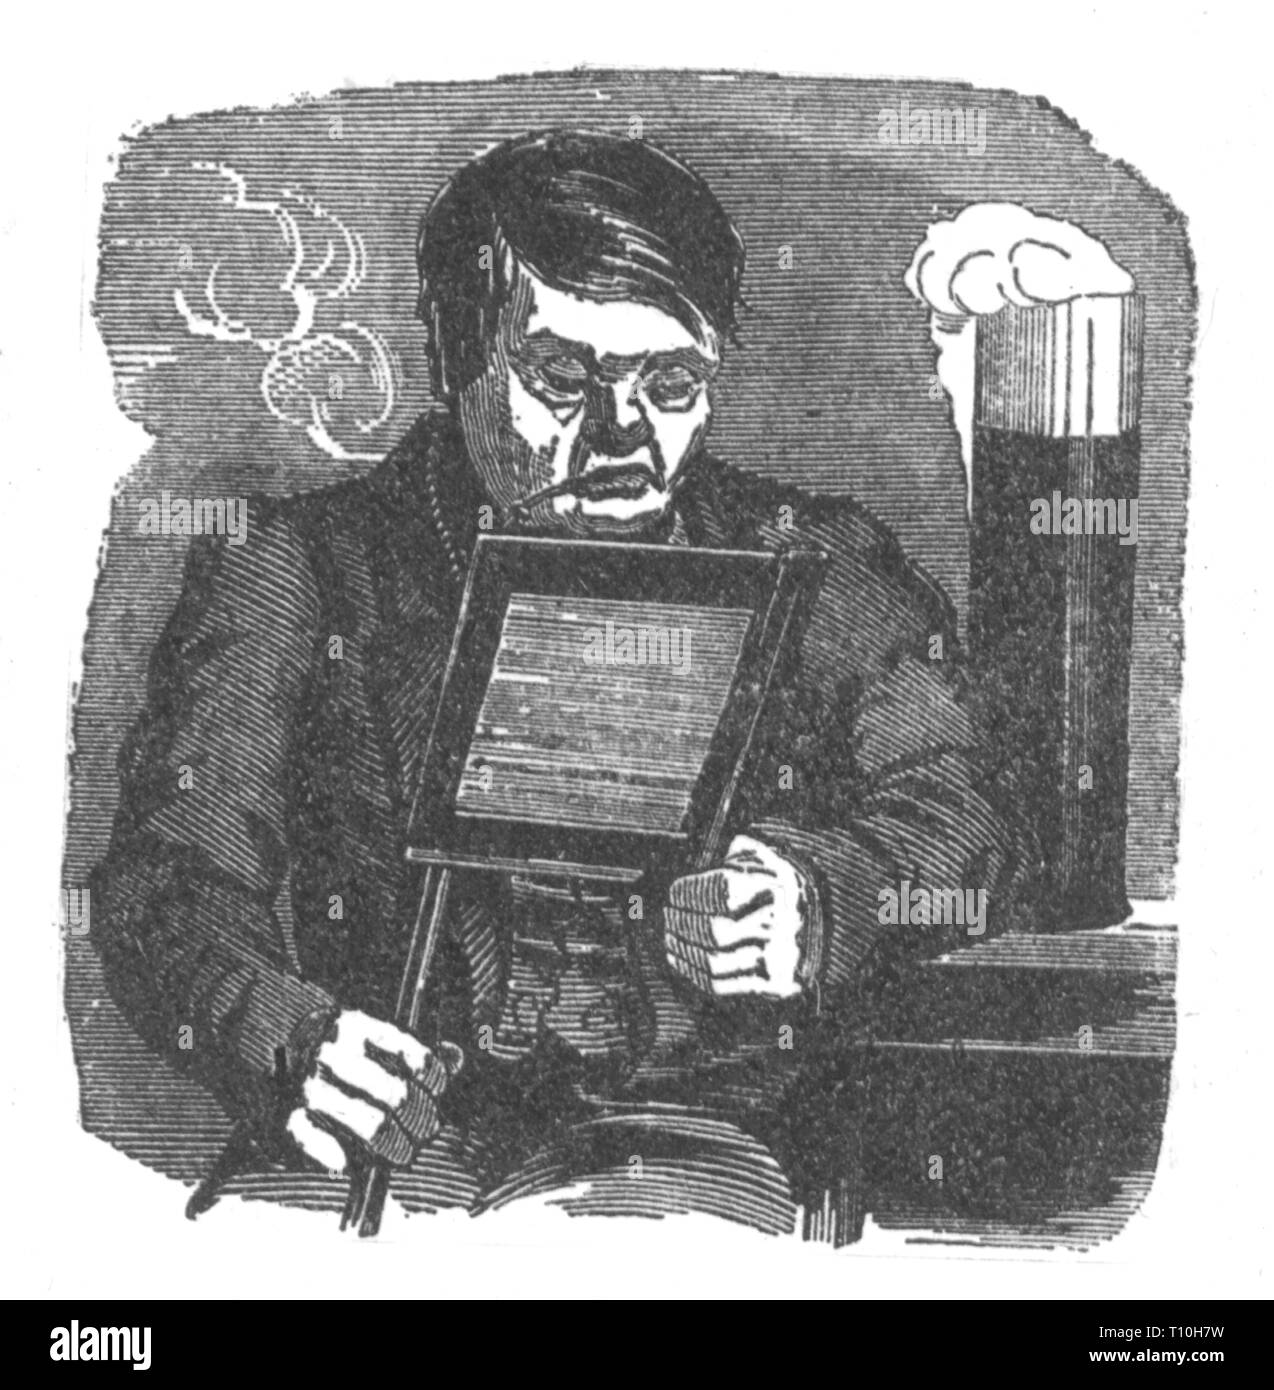 press / media, caricature, reader of the 'Vossische Zeitung', drawing, 1848, Germany, German Revolution of 1848-1849, Prussia, graphic, graphics, humor, humour, satire, newspaper, newspapers, magazine, magazines, reader, readers, reading, read, half length, sitting, sit, smoking pipe, pipes, smoking, smoke, beer glass, beer glasses, beer schooner, glass, glasses, beer, beers, atmosphere of comfort, comfortable ambience, coziness, cosiness, liberalism, 19th century, press, presses, caricature, caricatures, historic, historical, man, men, male, peo, Additional-Rights-Clearance-Info-Not-Available - Stock Image